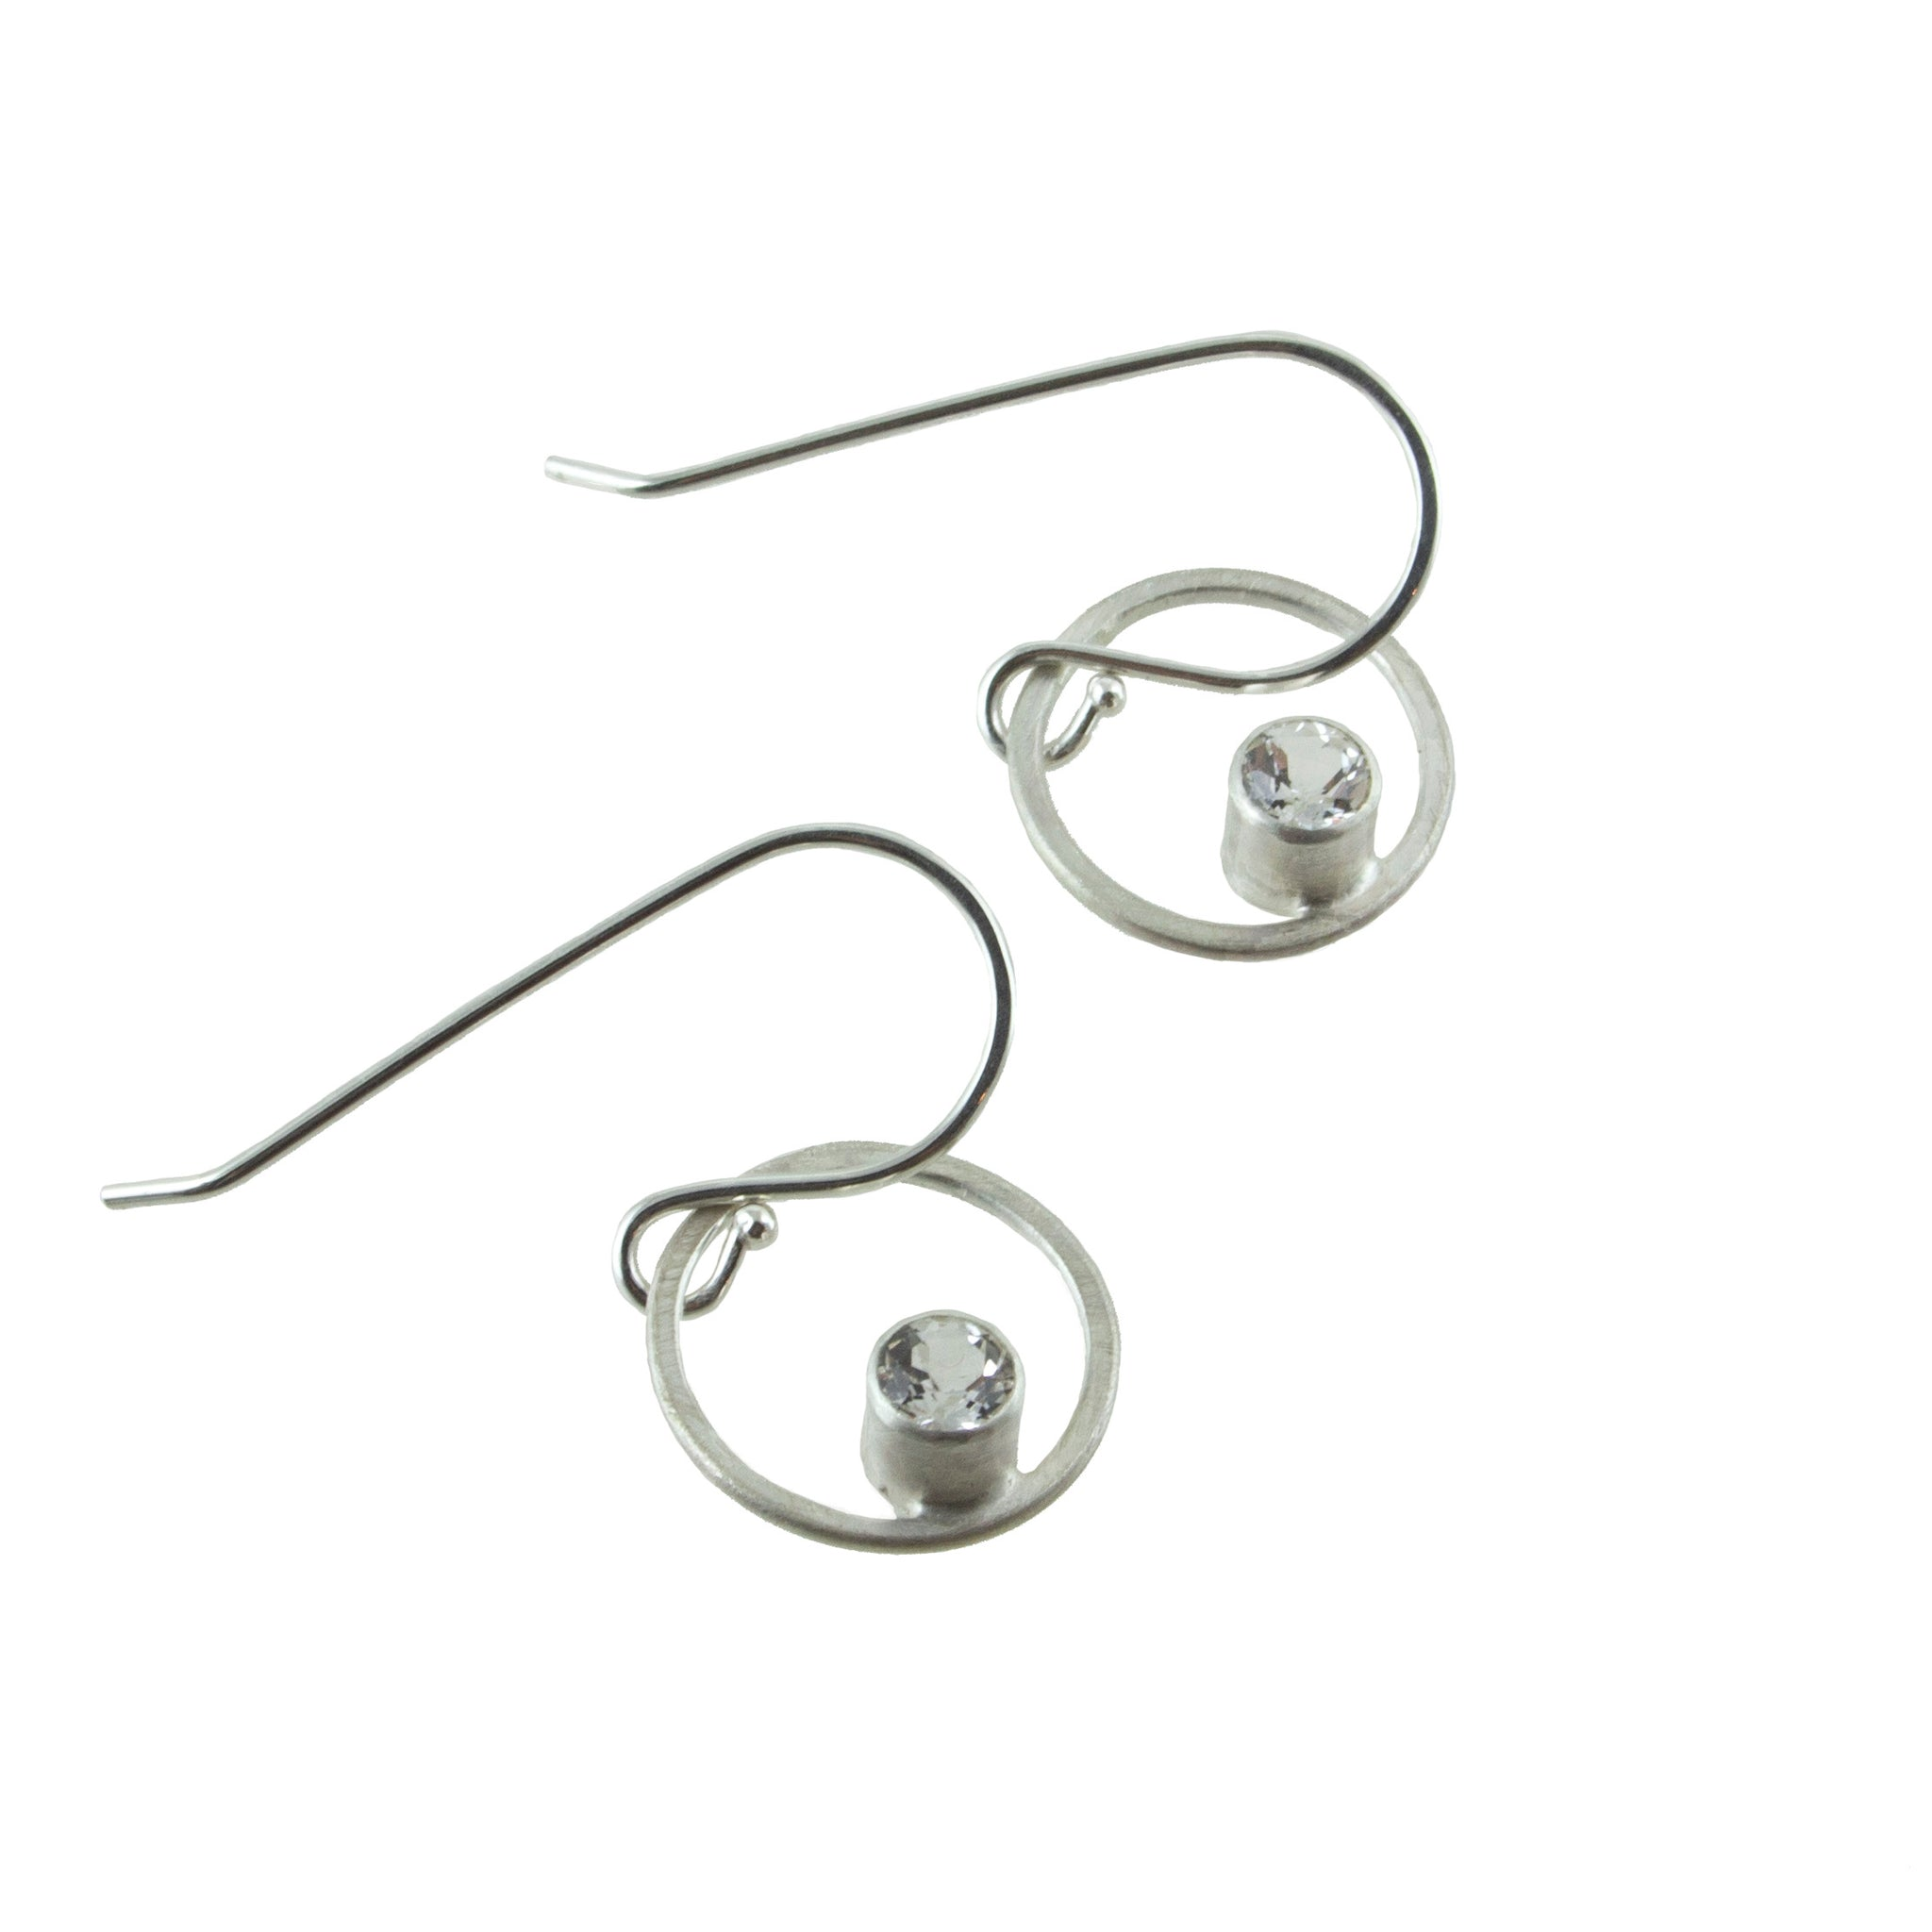 Small sterling silver circle earrings with gemstones by eko jewelry design